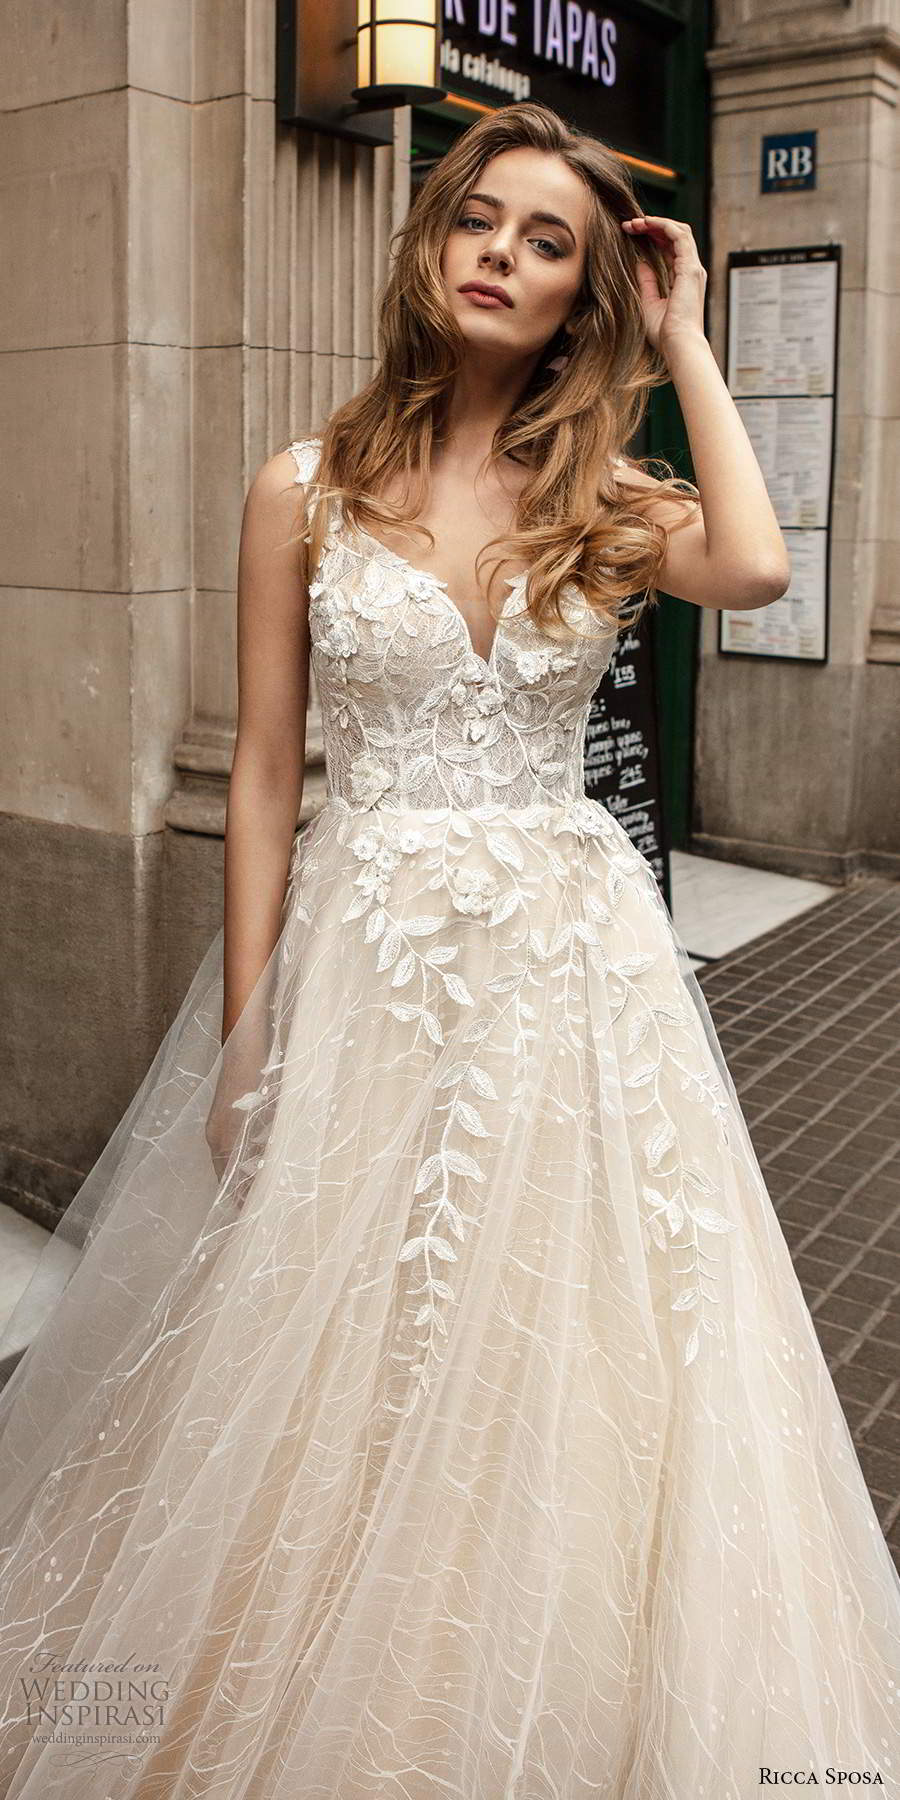 ricca sposa 2020 barcelona bridal sleeveless thick straps sweetheart neckline heavily embellished bodice a line ball gown wedding dress chapel train (17) mv